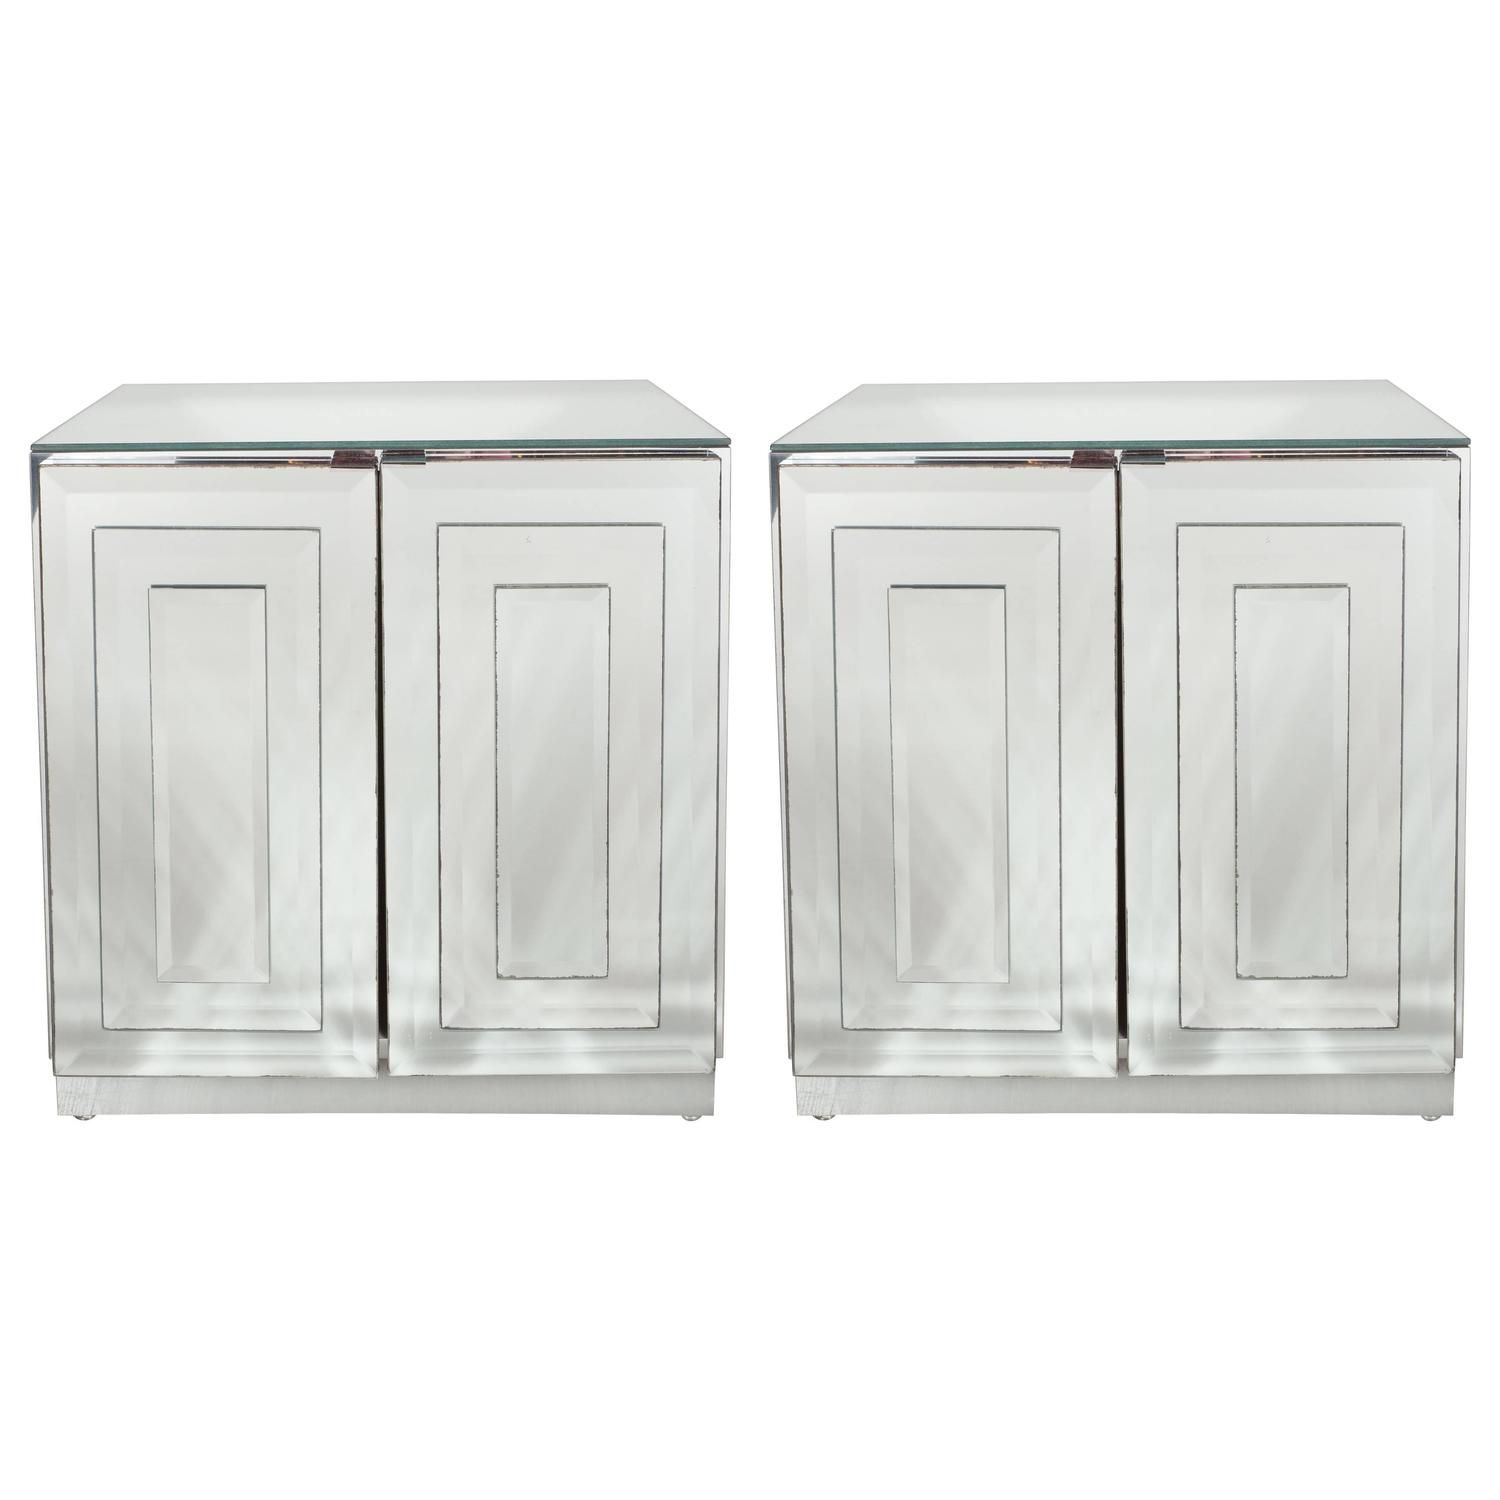 Bedrooms Mid Century Skyser Style Mirrored Nightstands End Tables By Ello